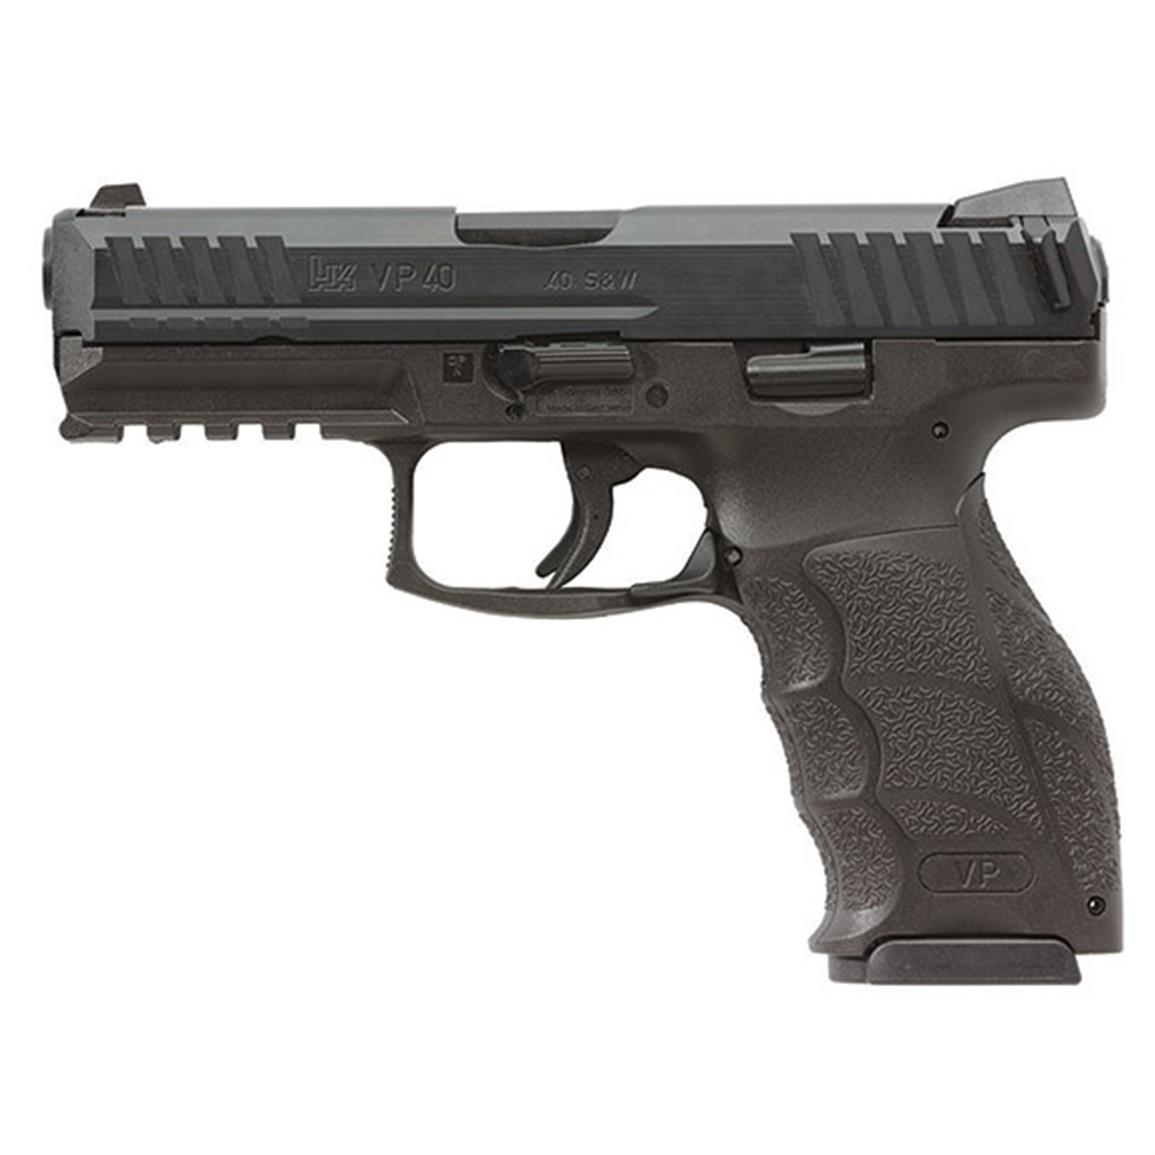 "Heckler & Koch VP40, Semi-Automatic, .40 Smith & Wesson, 4.09"" Barrel, 10+1 Rounds"